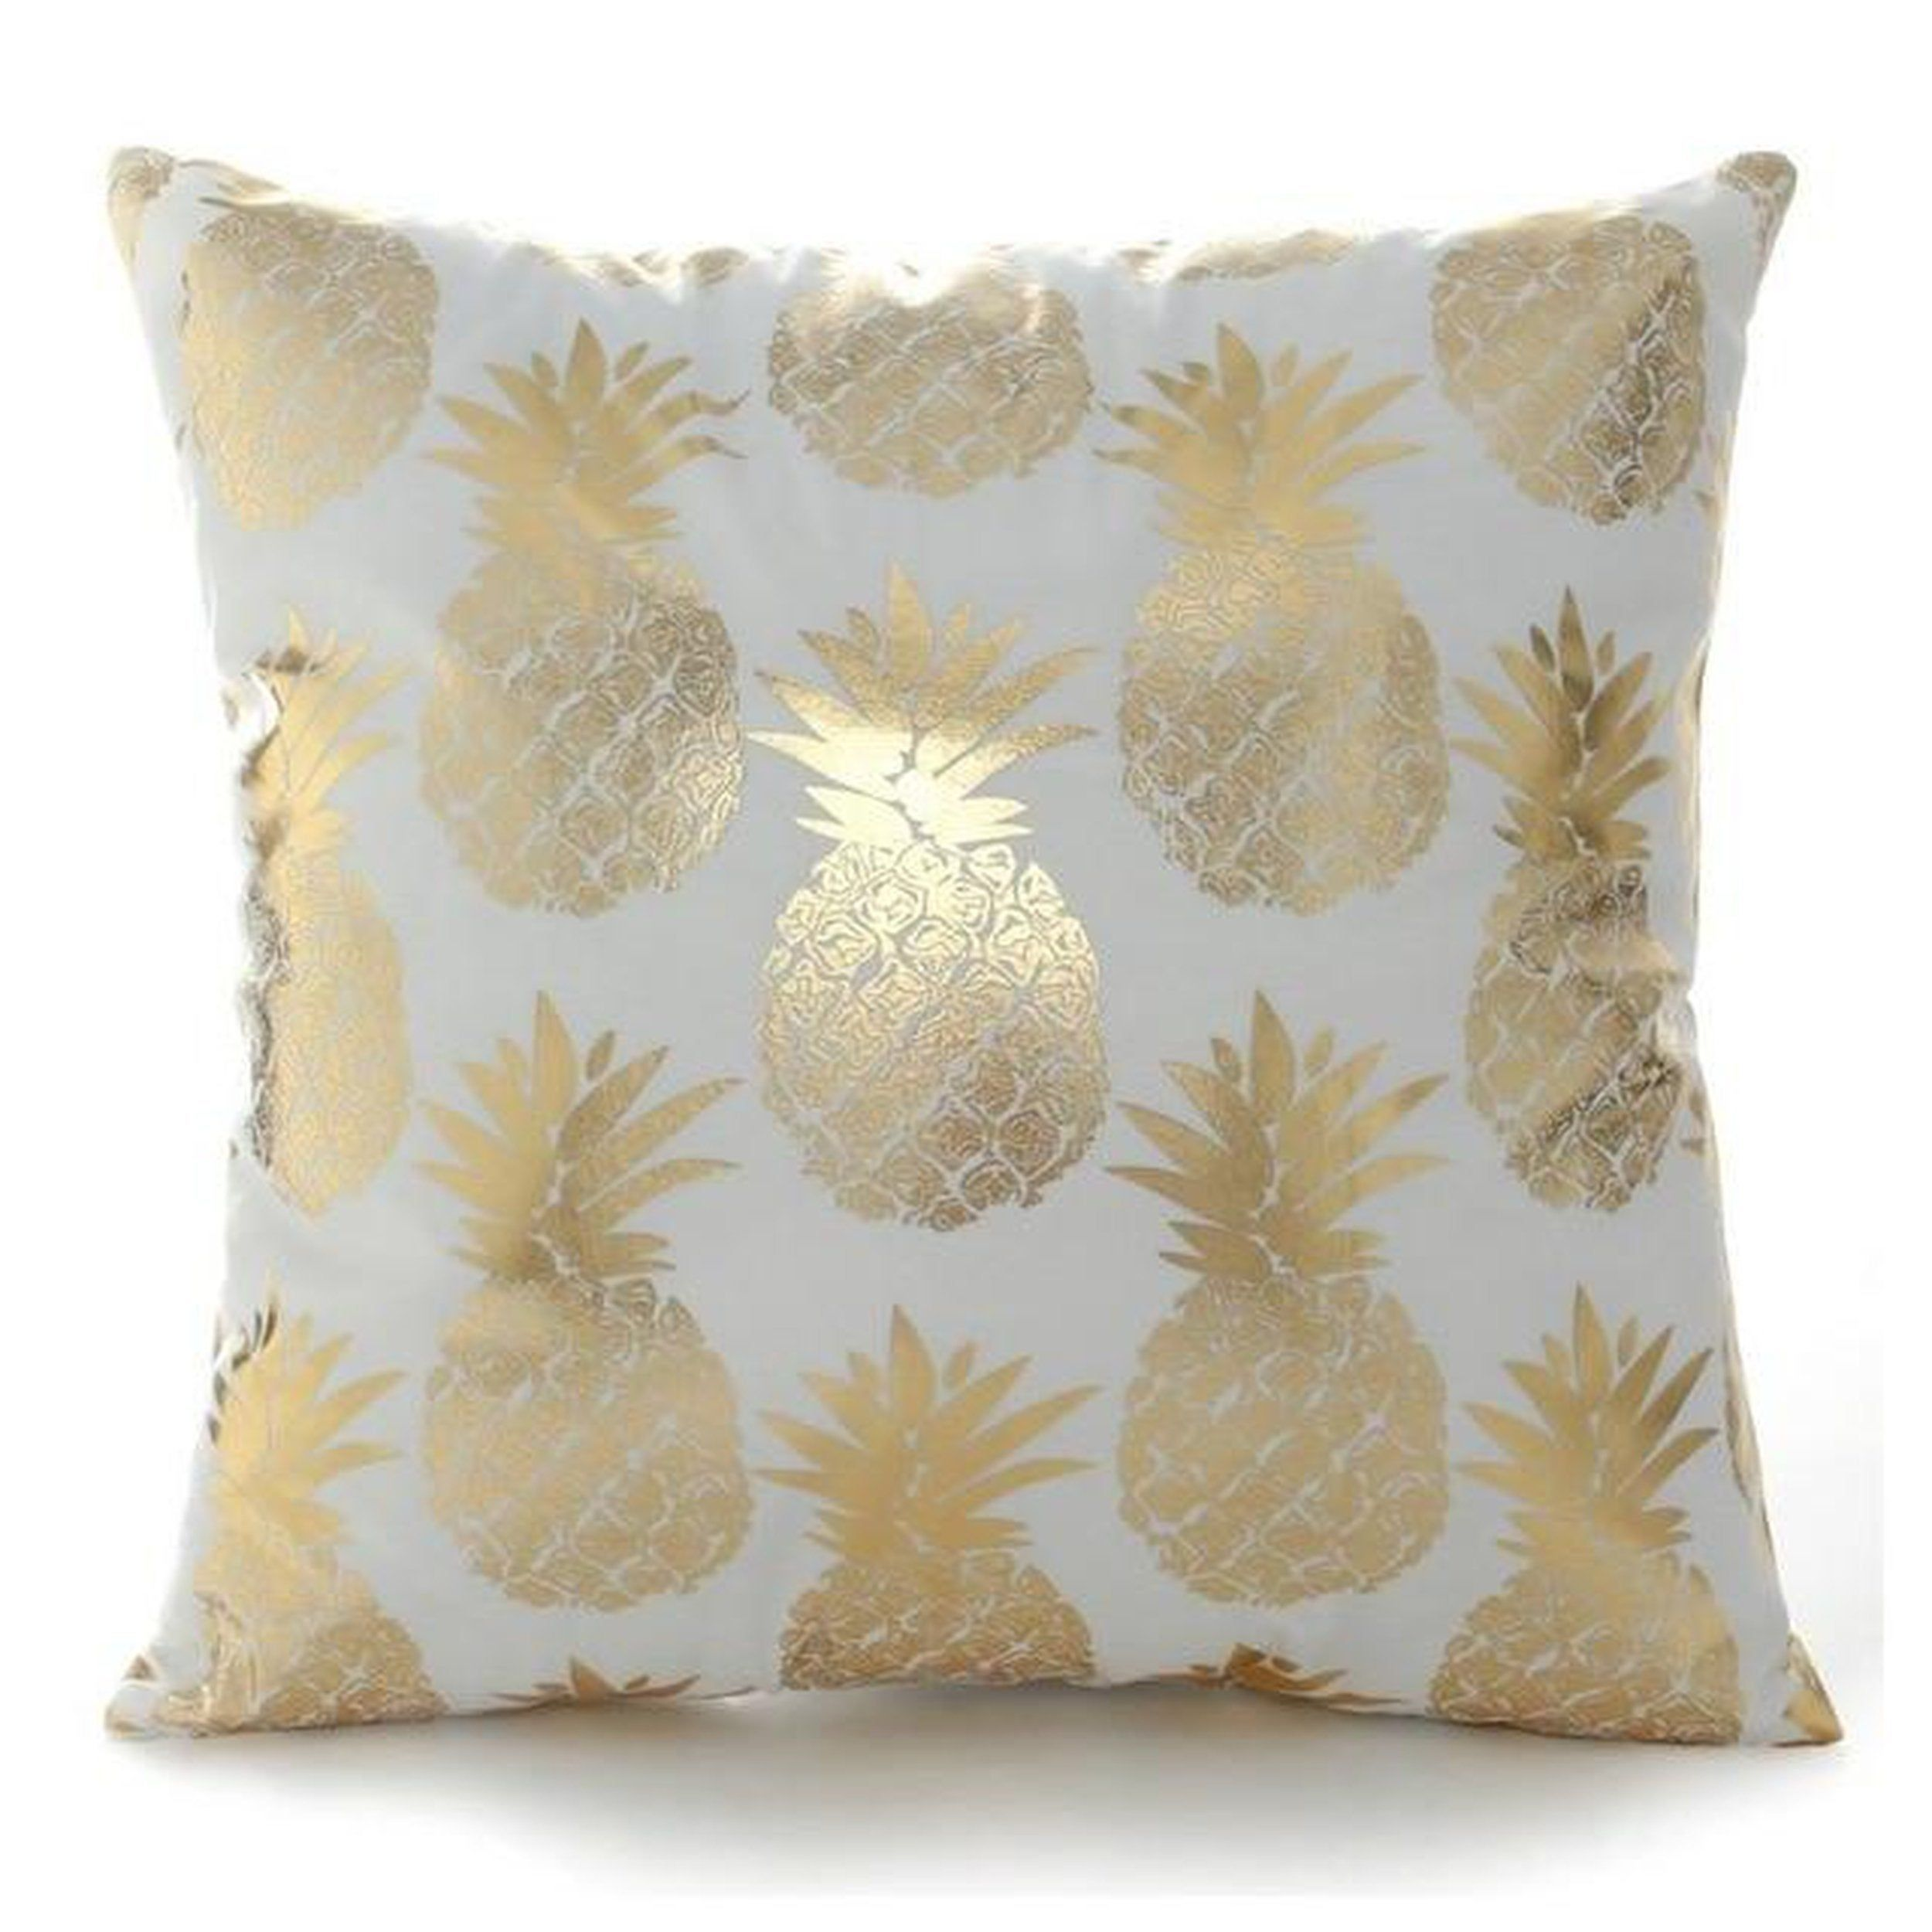 Decorative Pillows